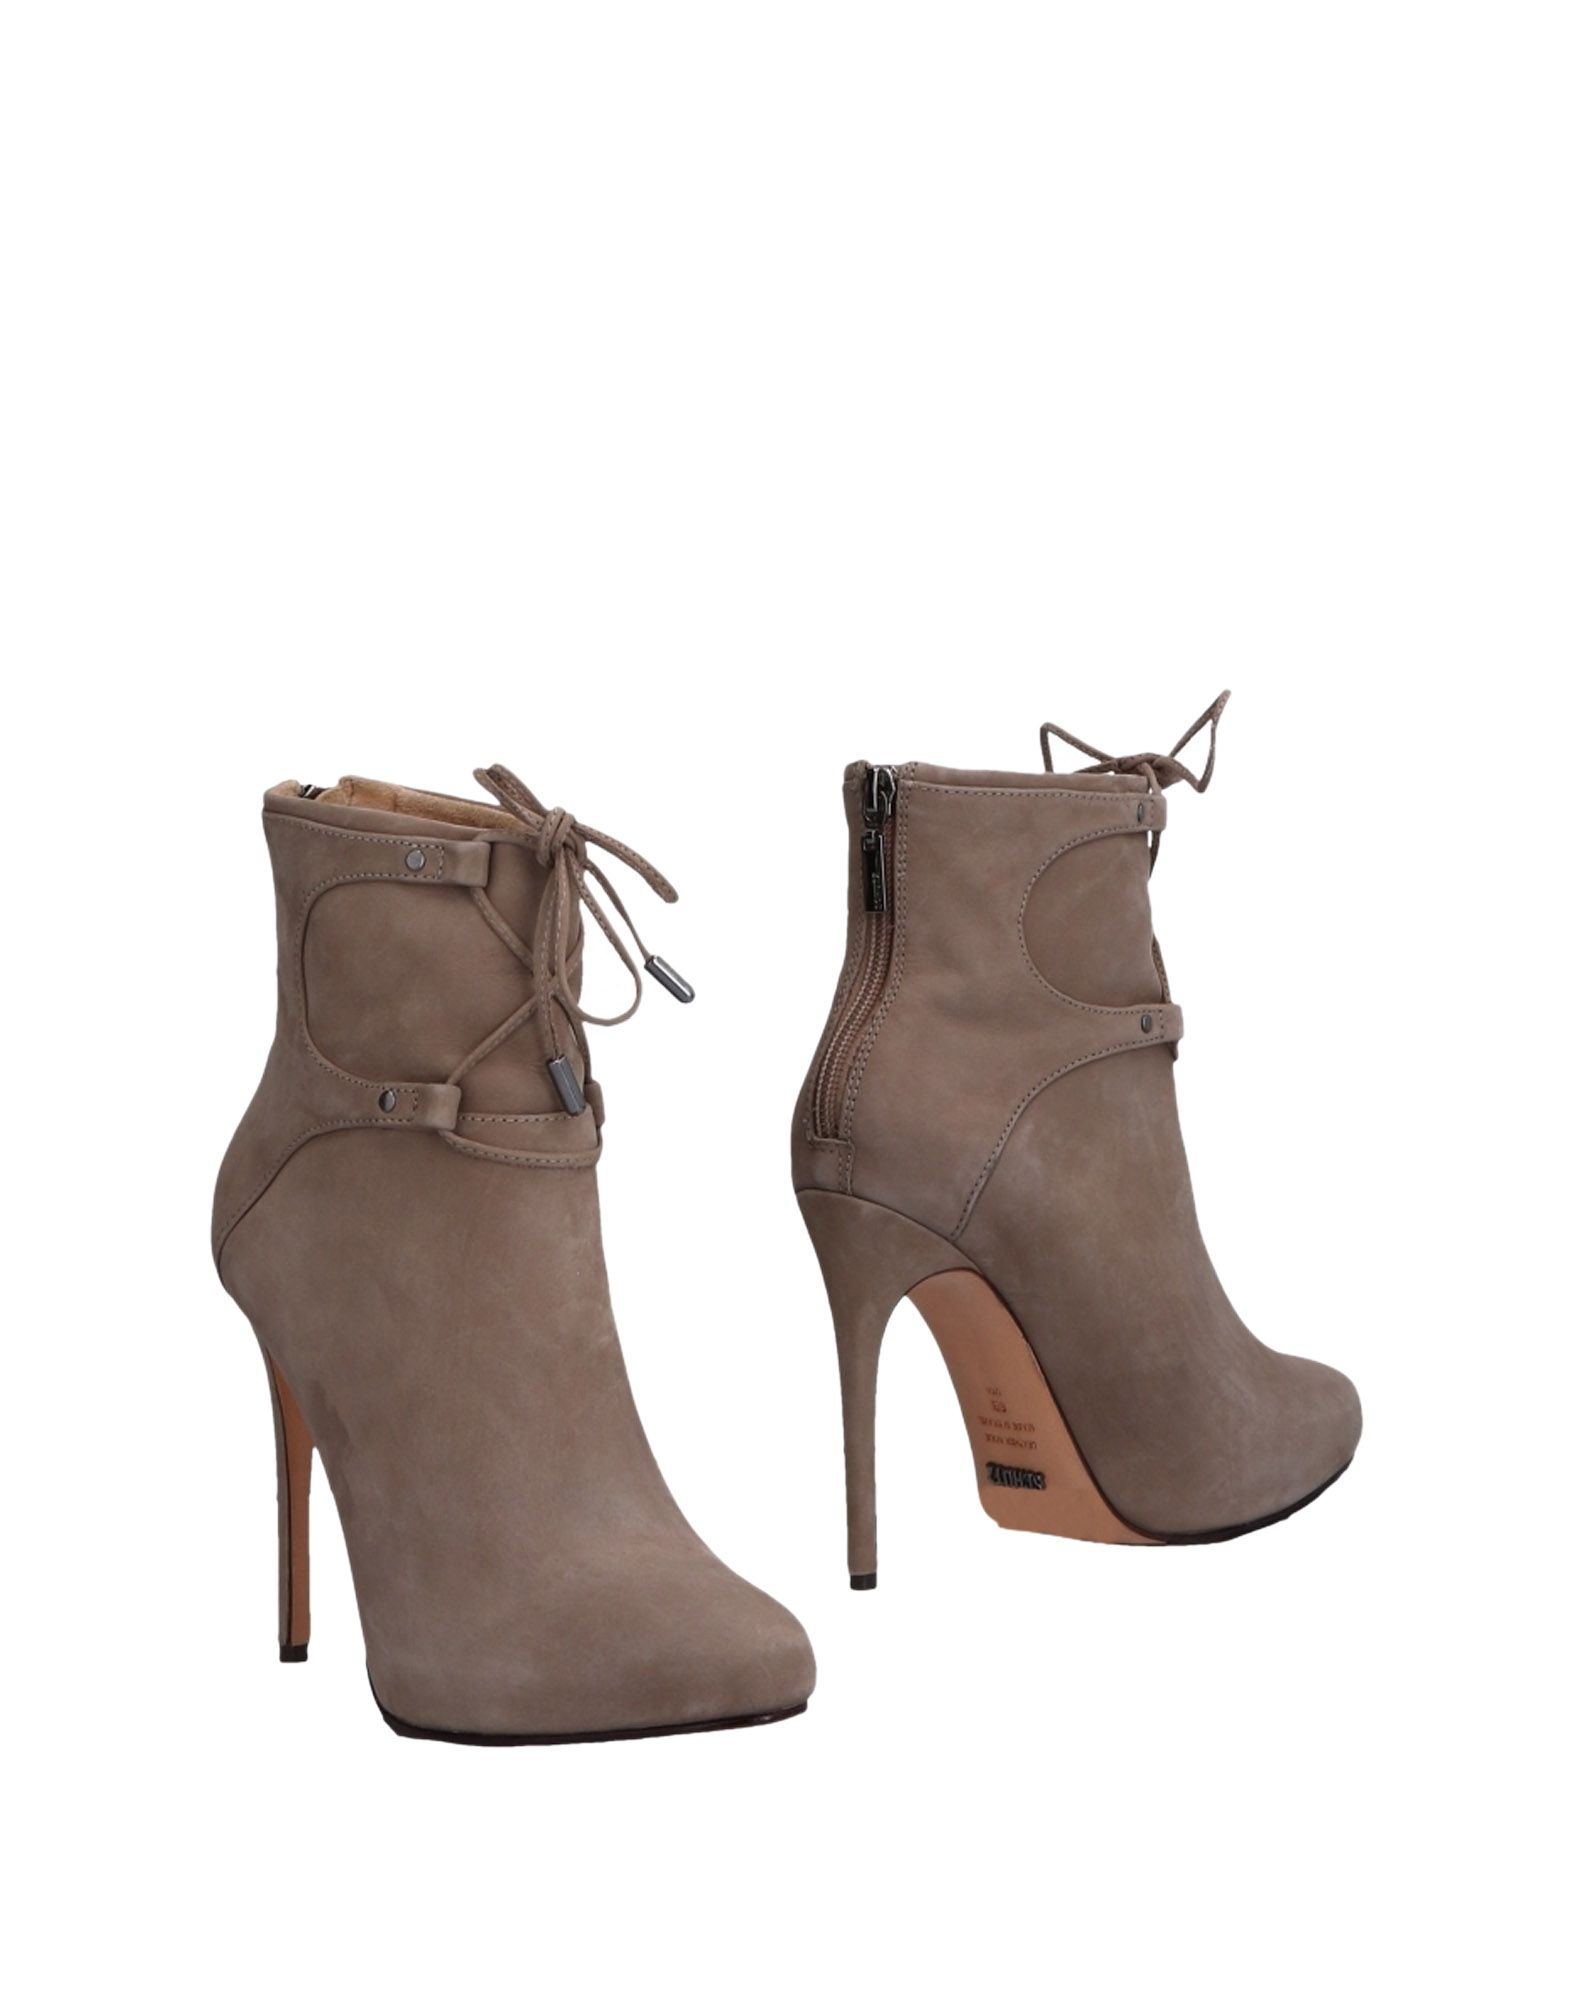 Schutz Ankle Boot - Women Schutz  Ankle Boots online on  Schutz United Kingdom - 11475832QV a07d0e